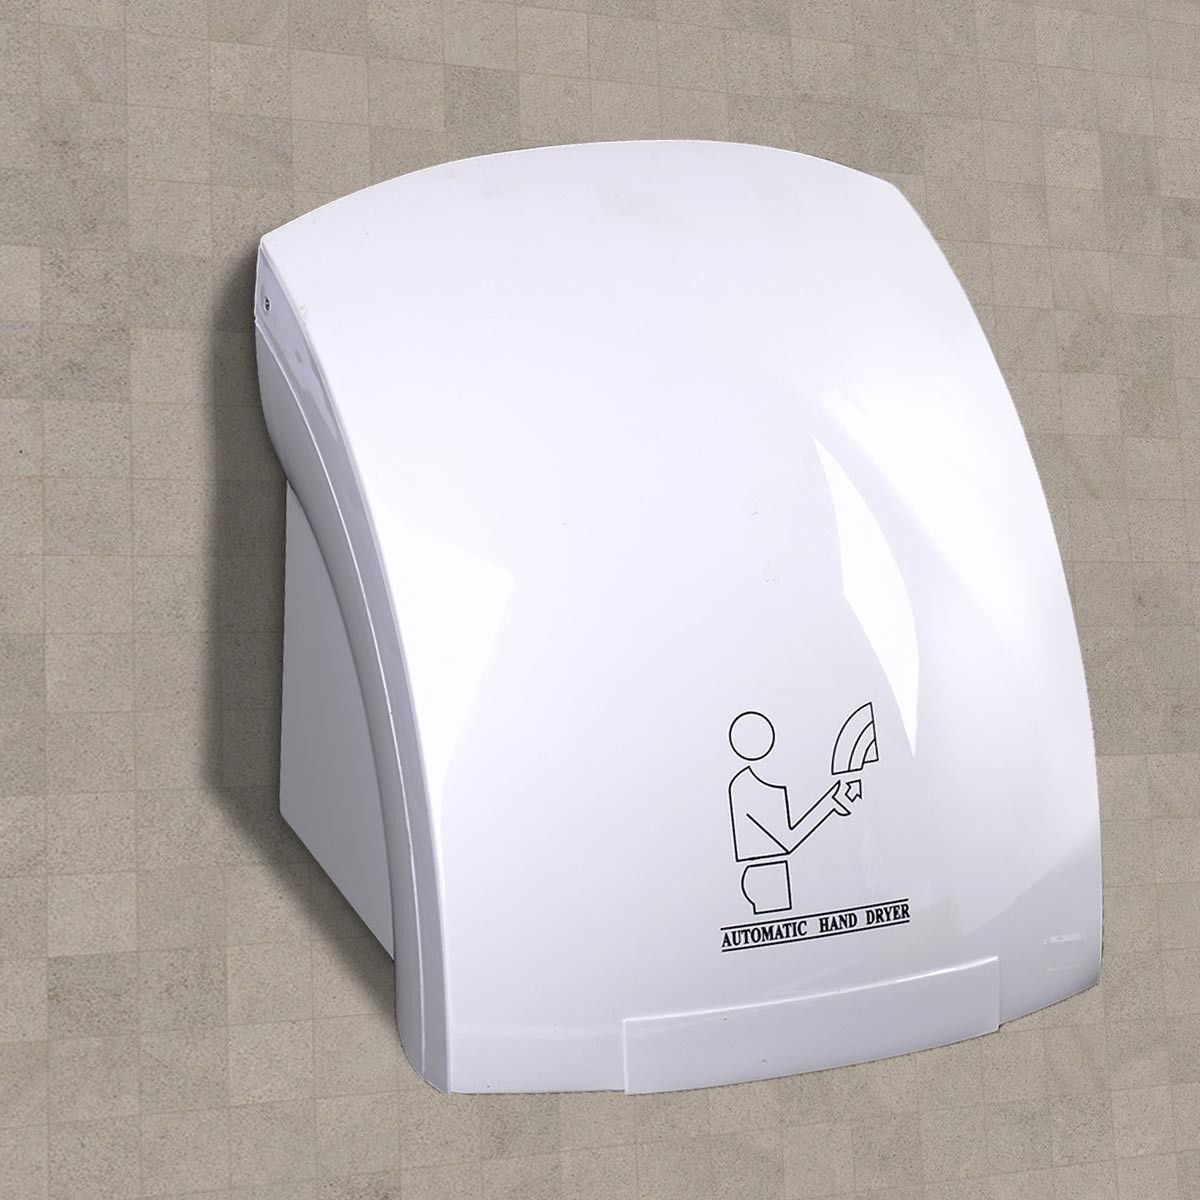 Hand Dryer For Bathroom Decor Magnificent Automatic Infared Sensor Hand Dryer Household Hotel Bathroom Hands . Design Inspiration